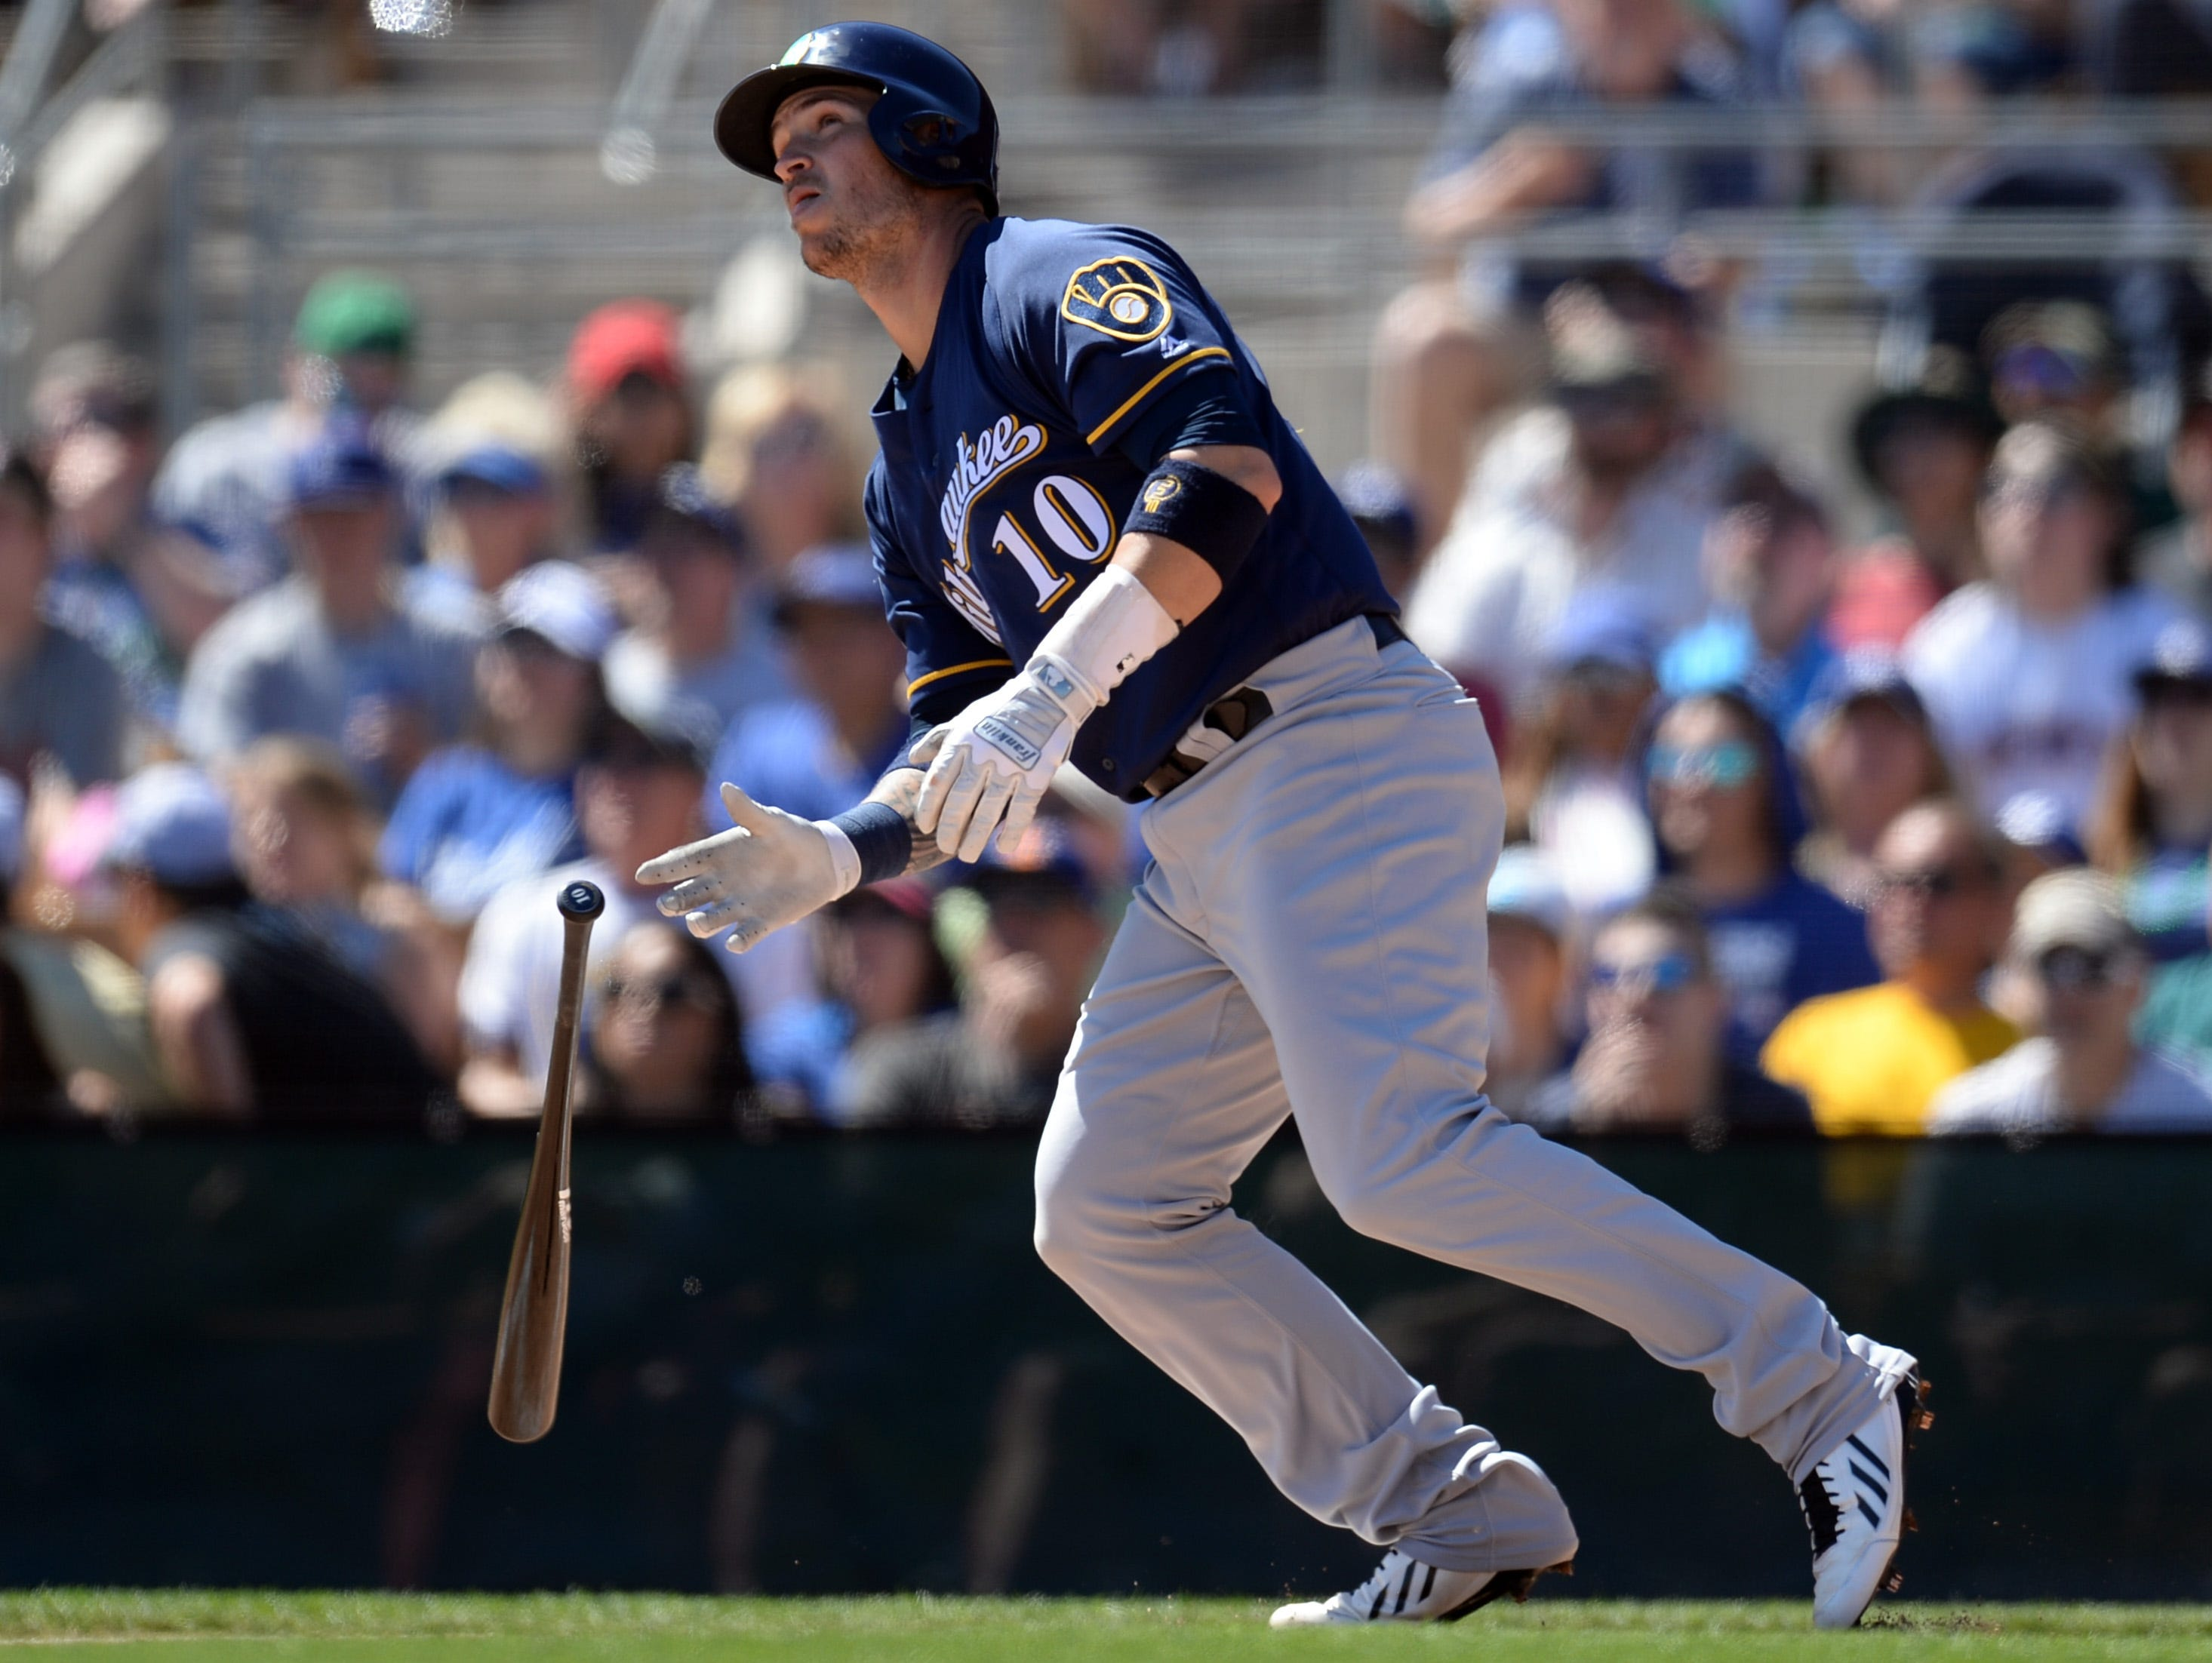 March 17: Brewers catcher Yasmani Grandal runs to first against the Dodgers.